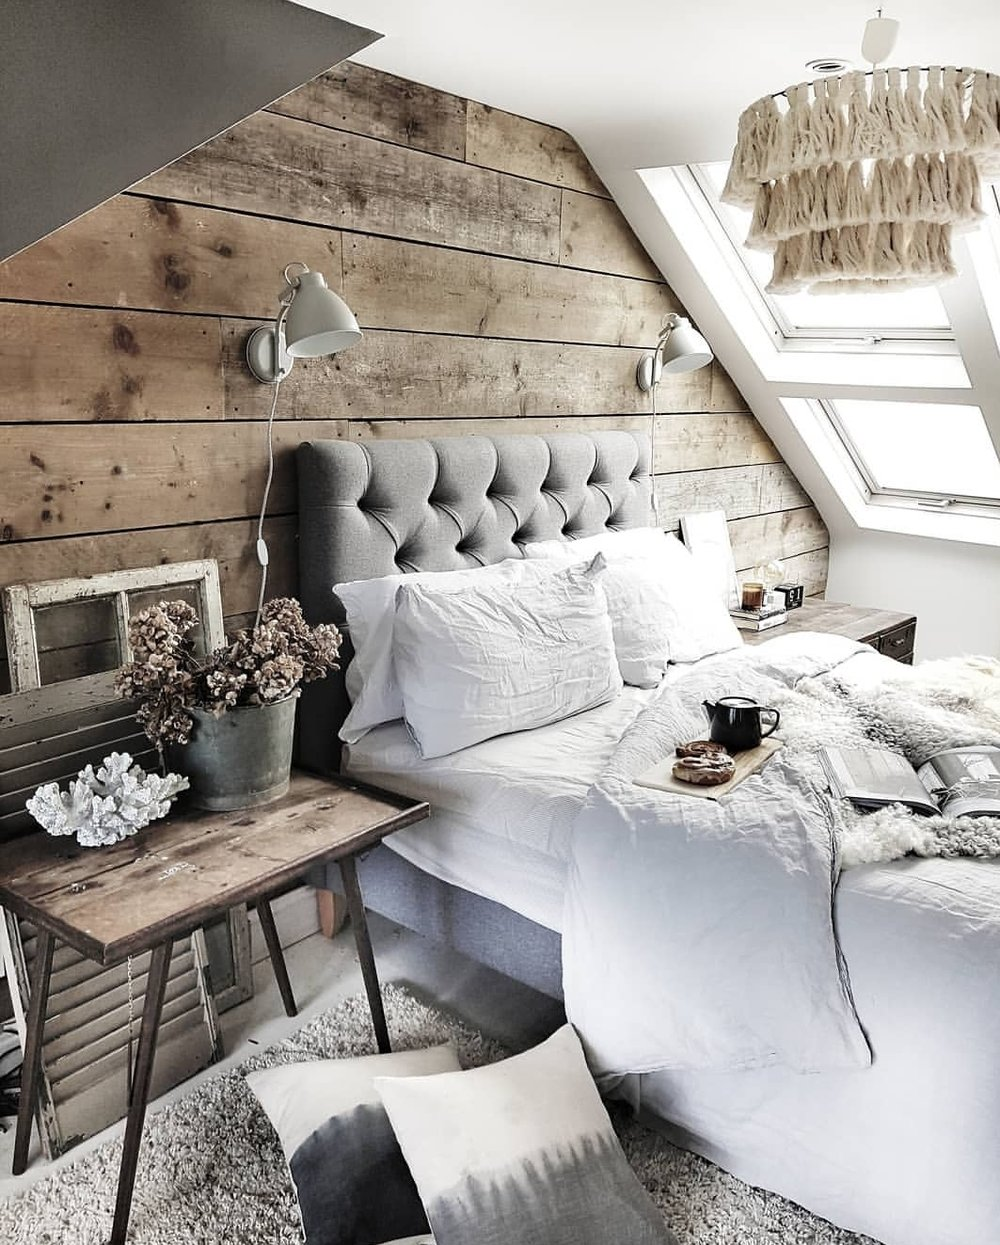 A rustic bedroom revamp later and a much lighter, brighter photo saw this photo do much better